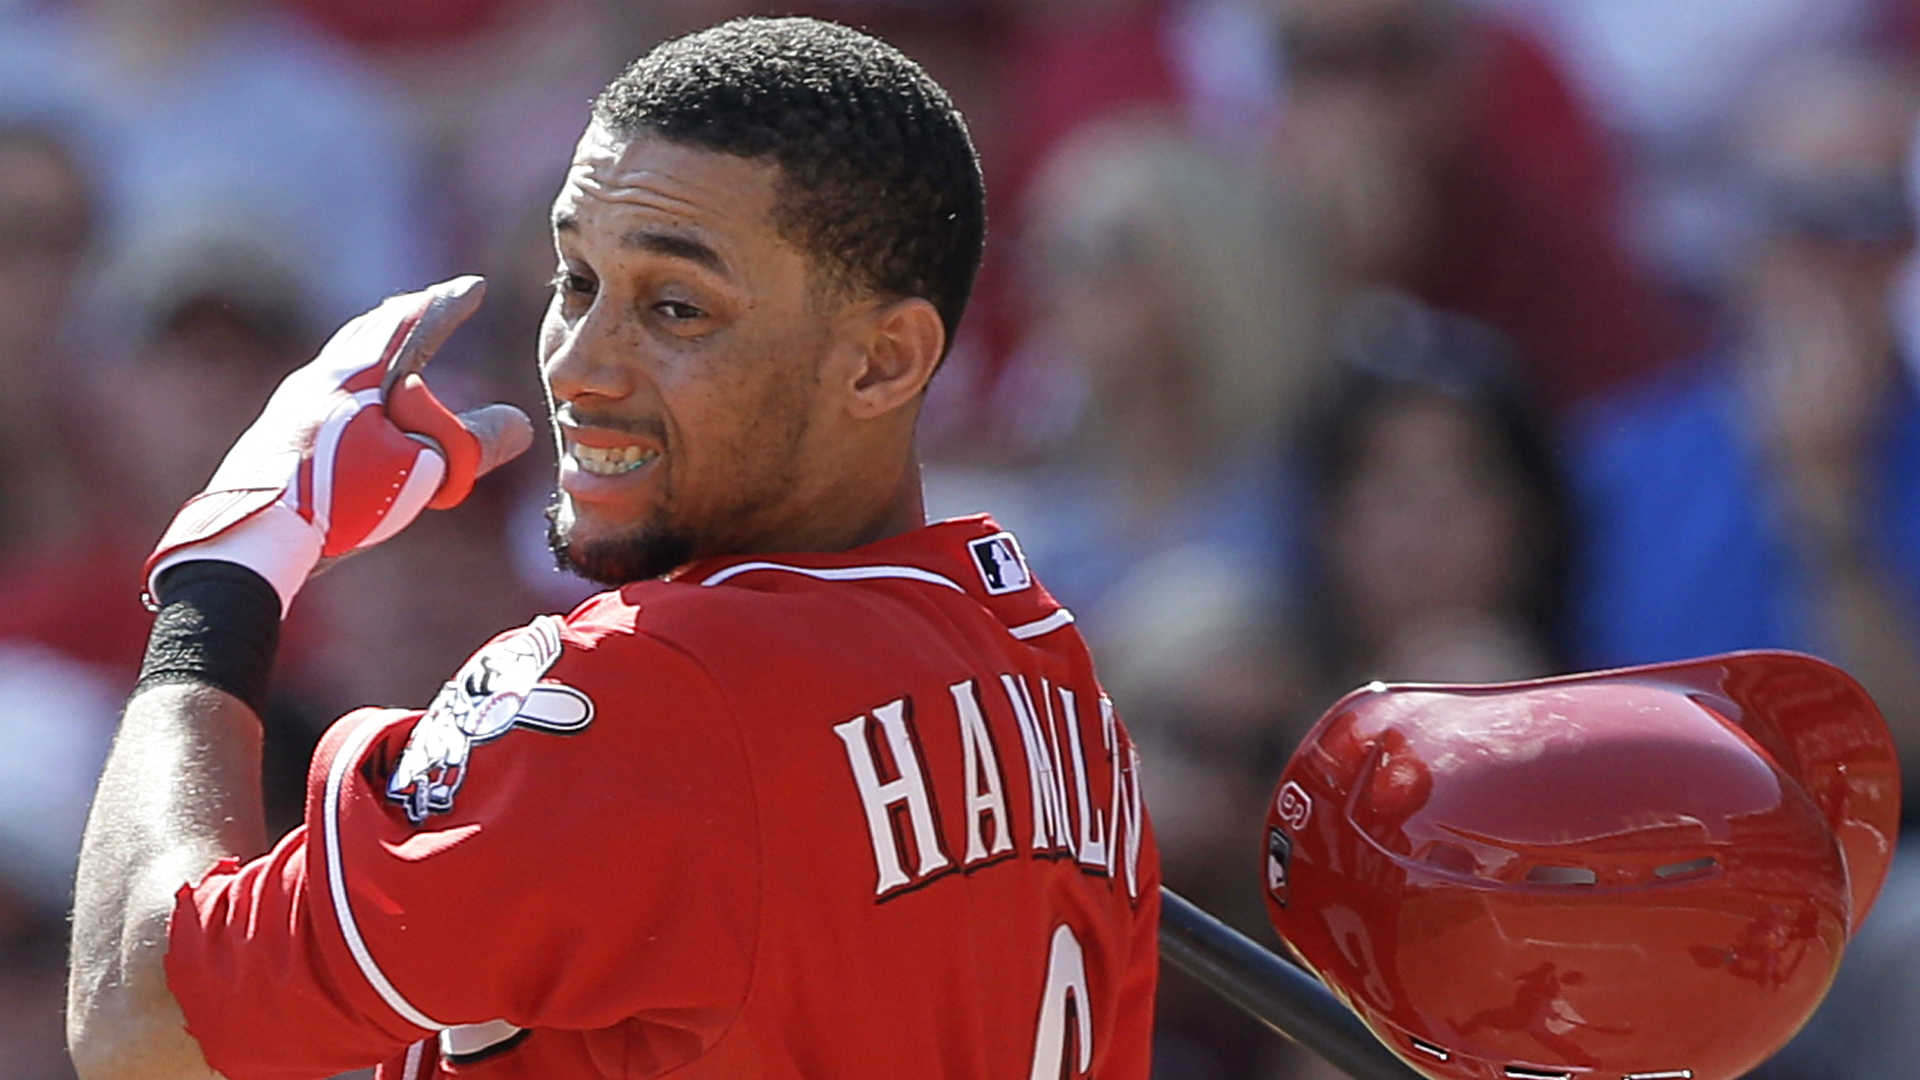 Fantasy baseball sleepers: Hamilton meets need for speed, but bat must follow